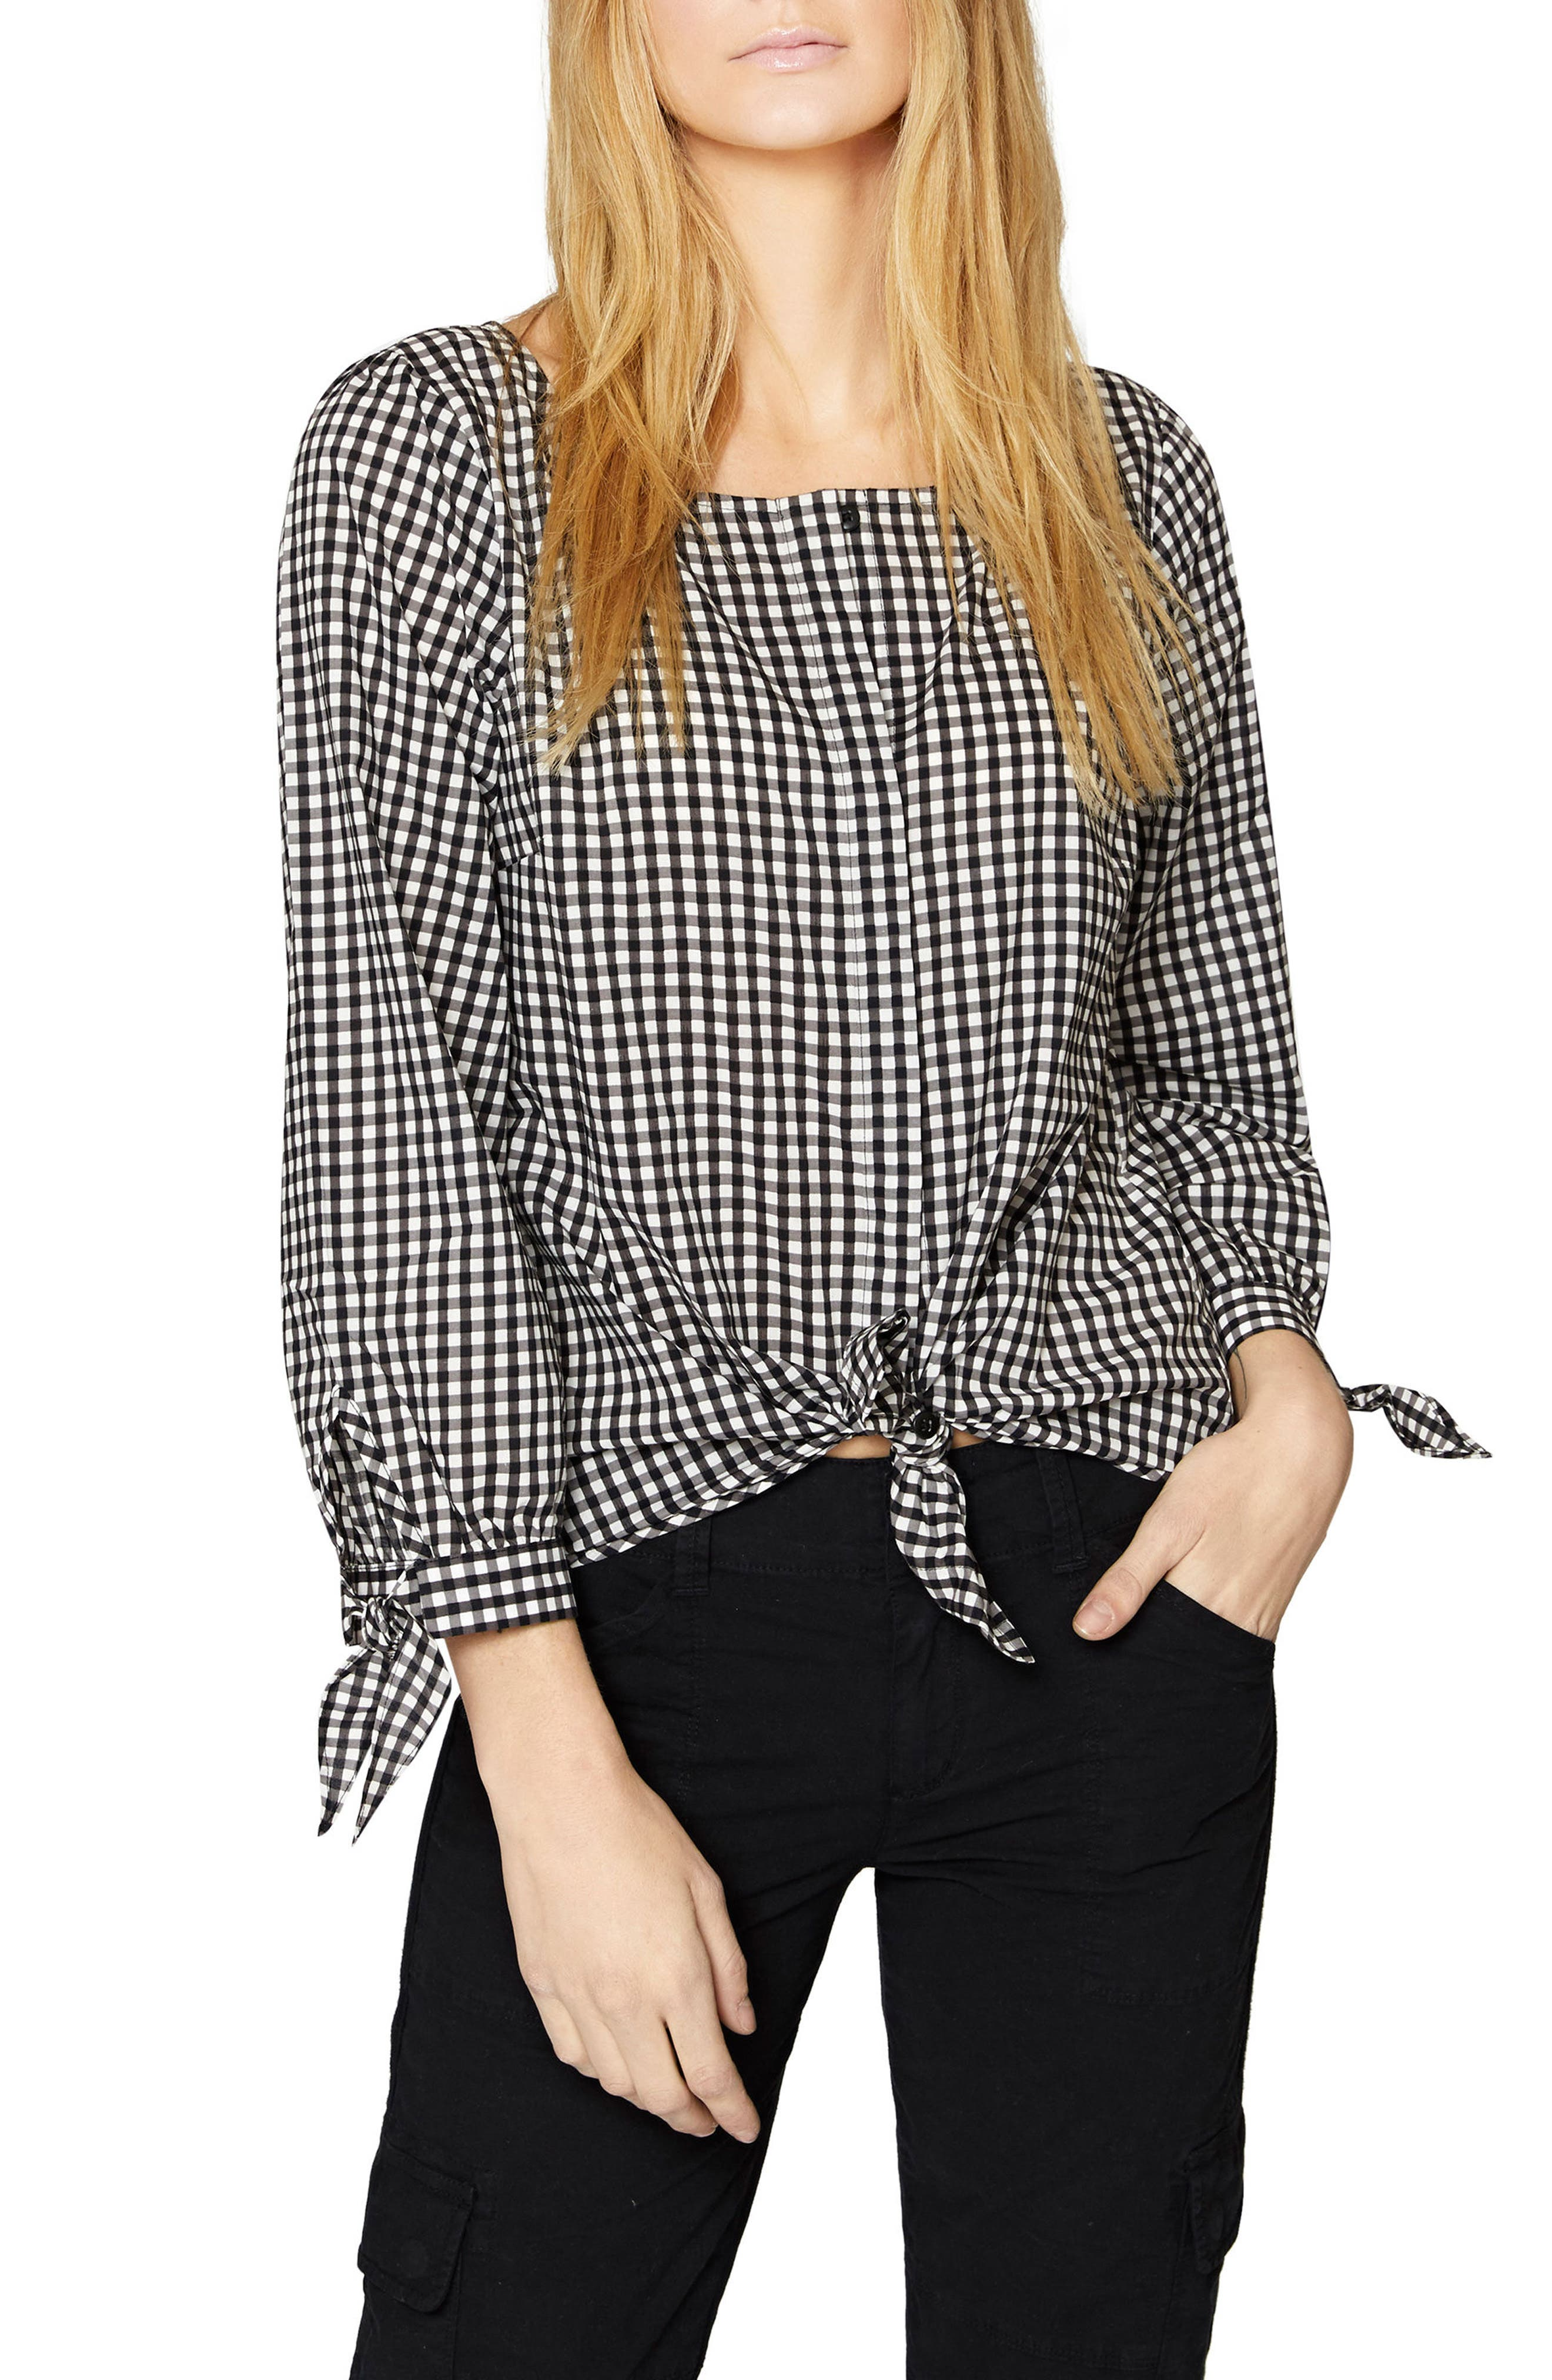 Madie Tie Sleeve Blouse,                             Main thumbnail 1, color,                             Bistro Check